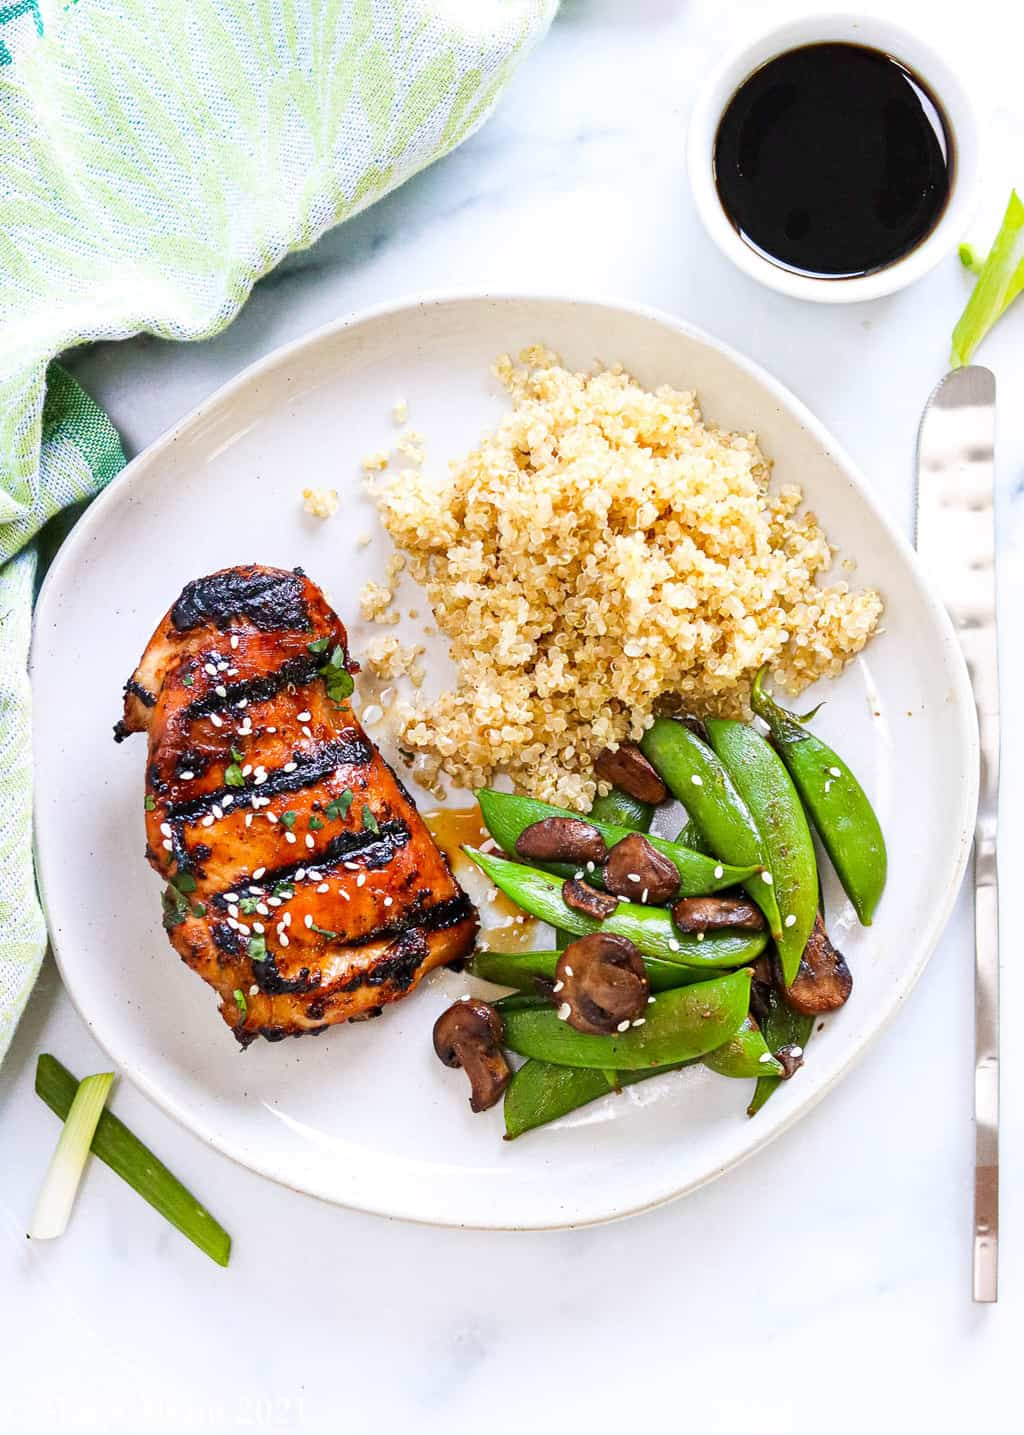 A plate of quinoa, veggies, and Asian marinated chicken